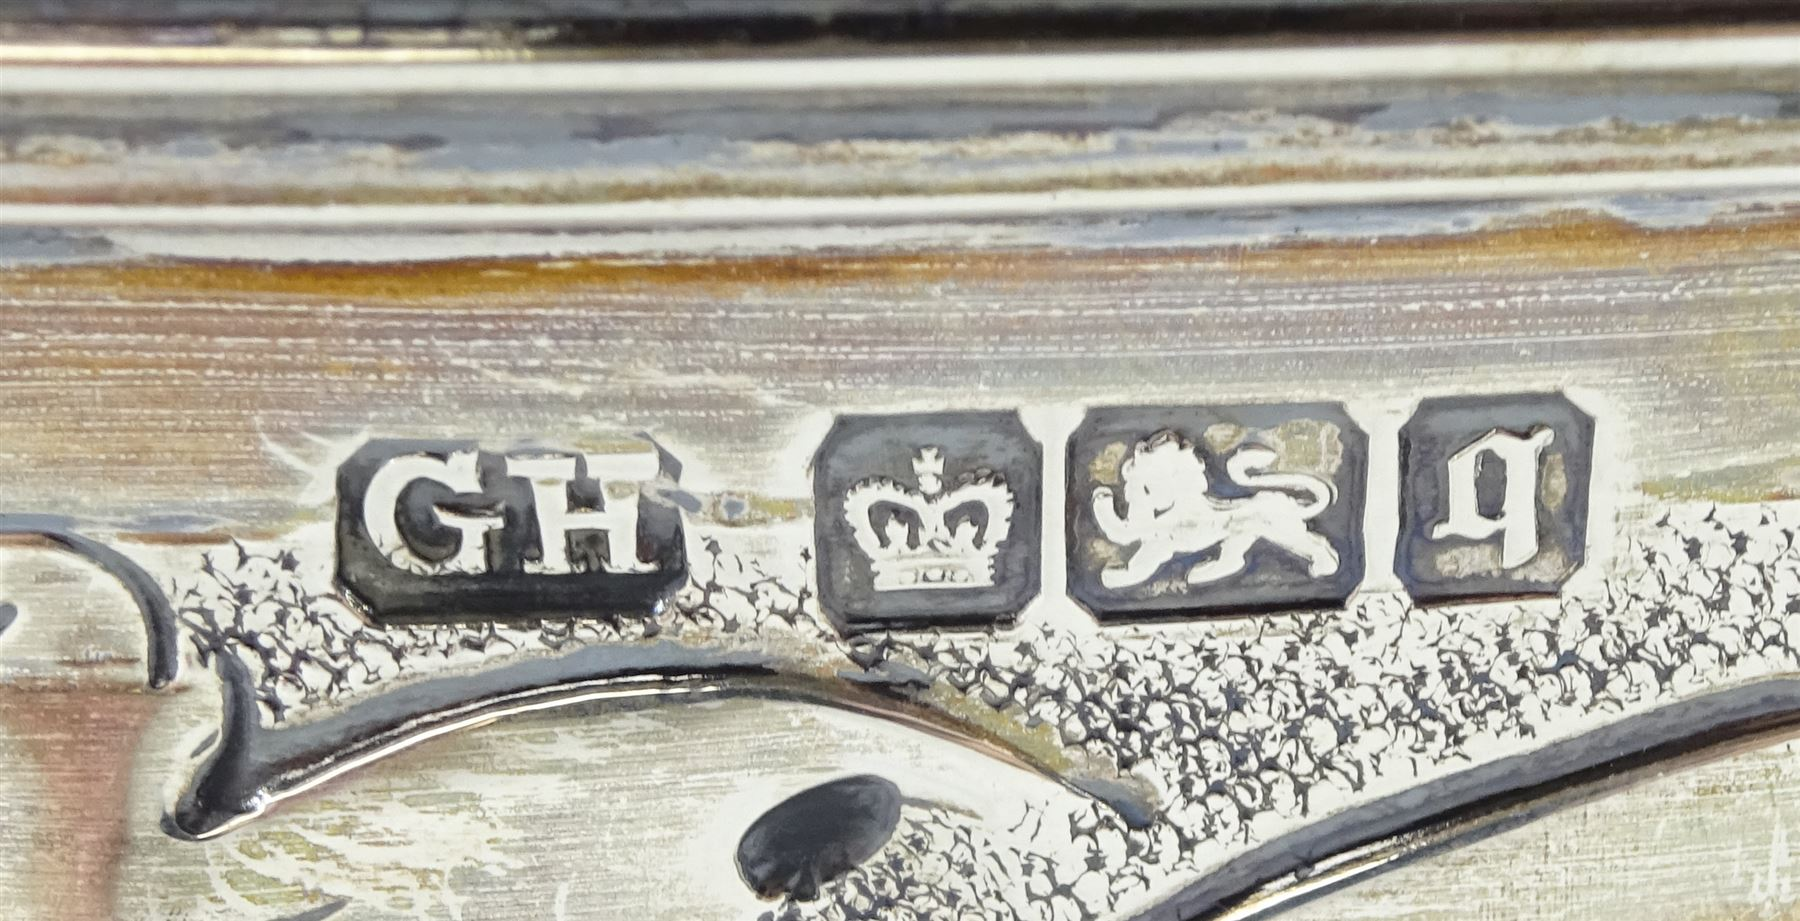 Edwardian silver footed bowl - Image 2 of 2